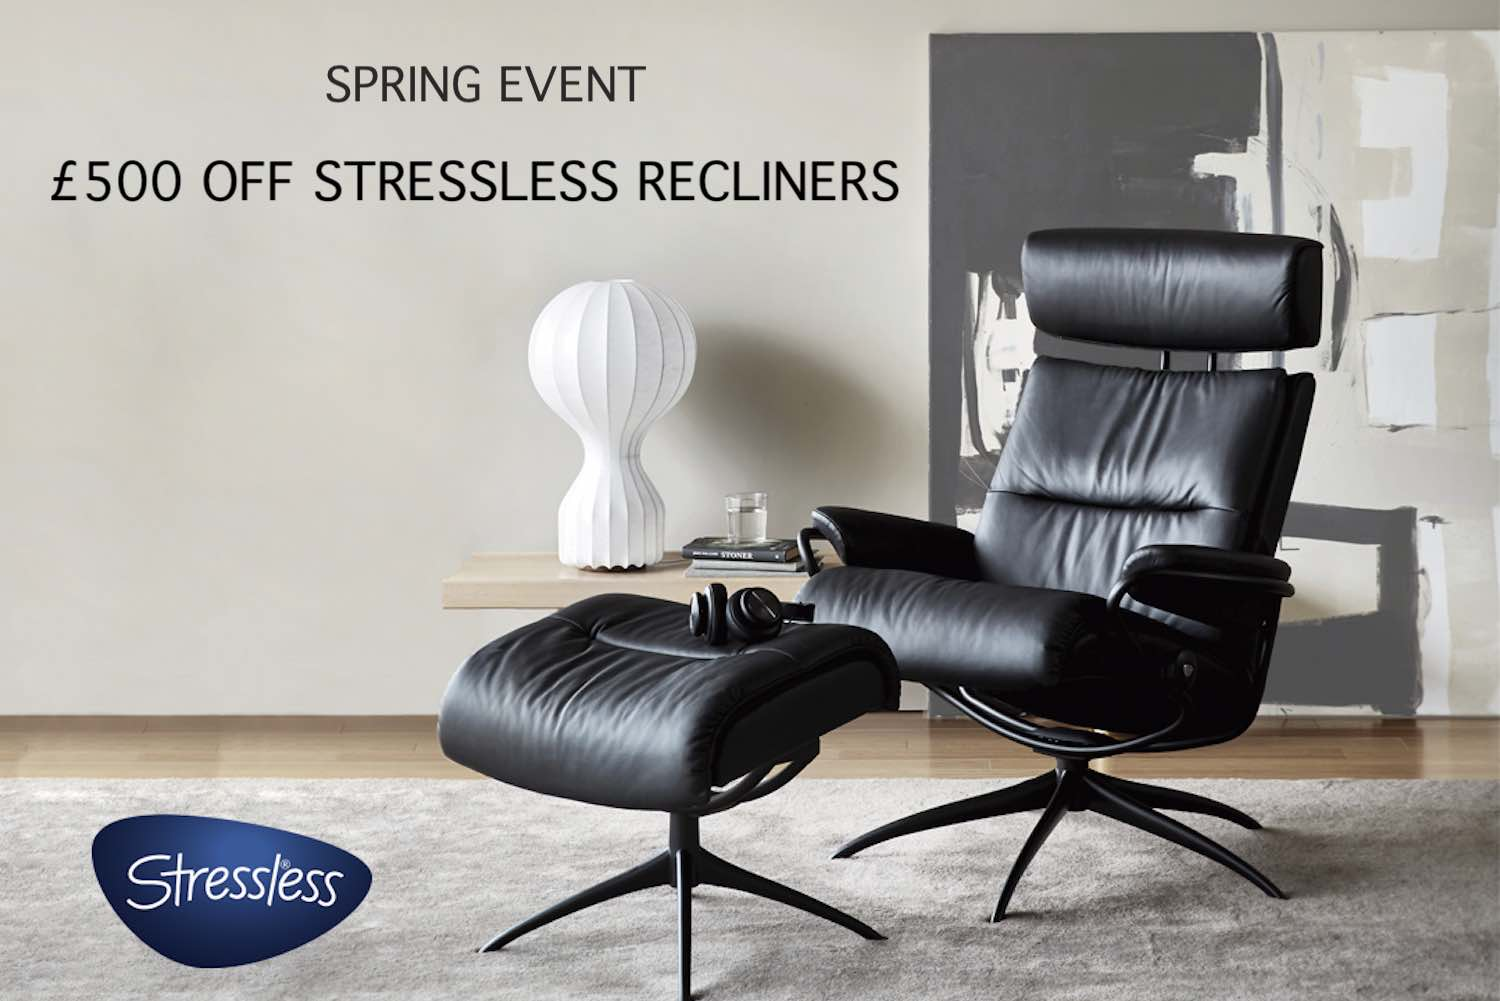 £500 OFF STRESSLESS RECLINERS